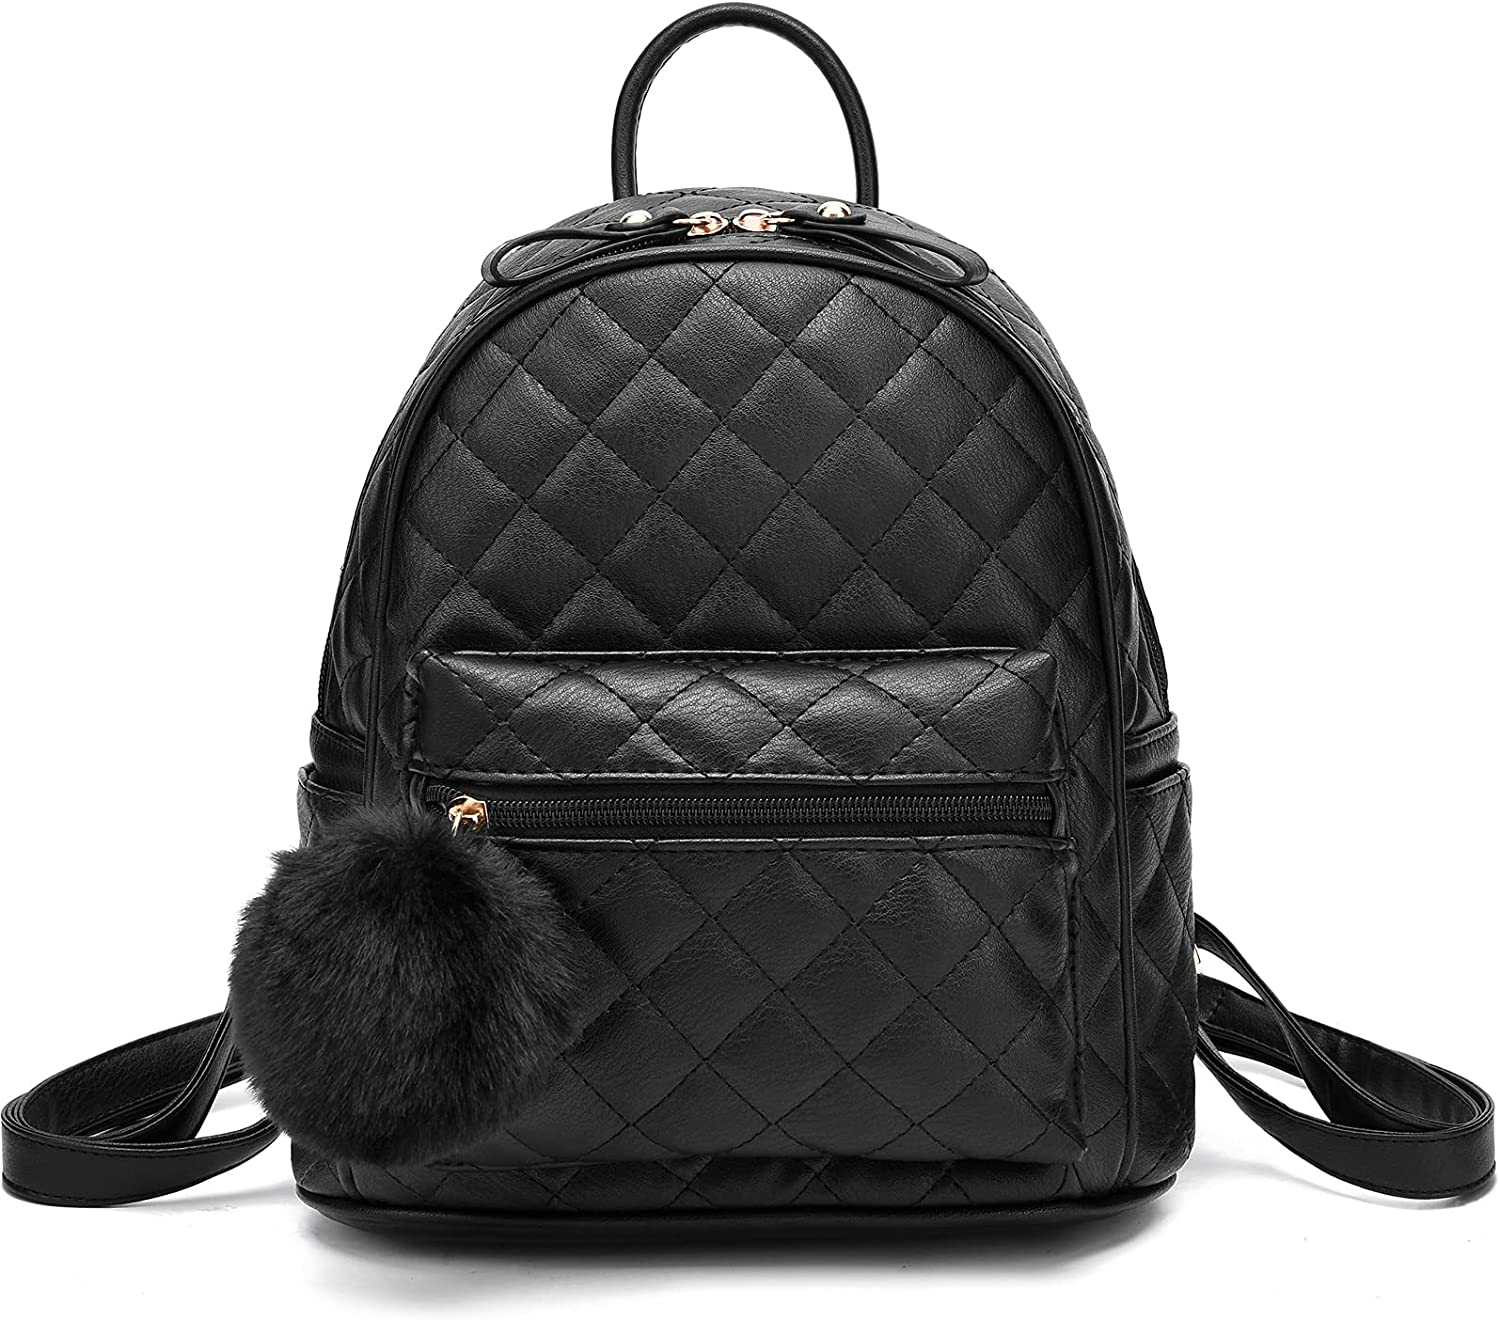 Oakland Mall Quilted Purse Denver Mall Backpack for Women Shoulder Leather Style Bag Ins